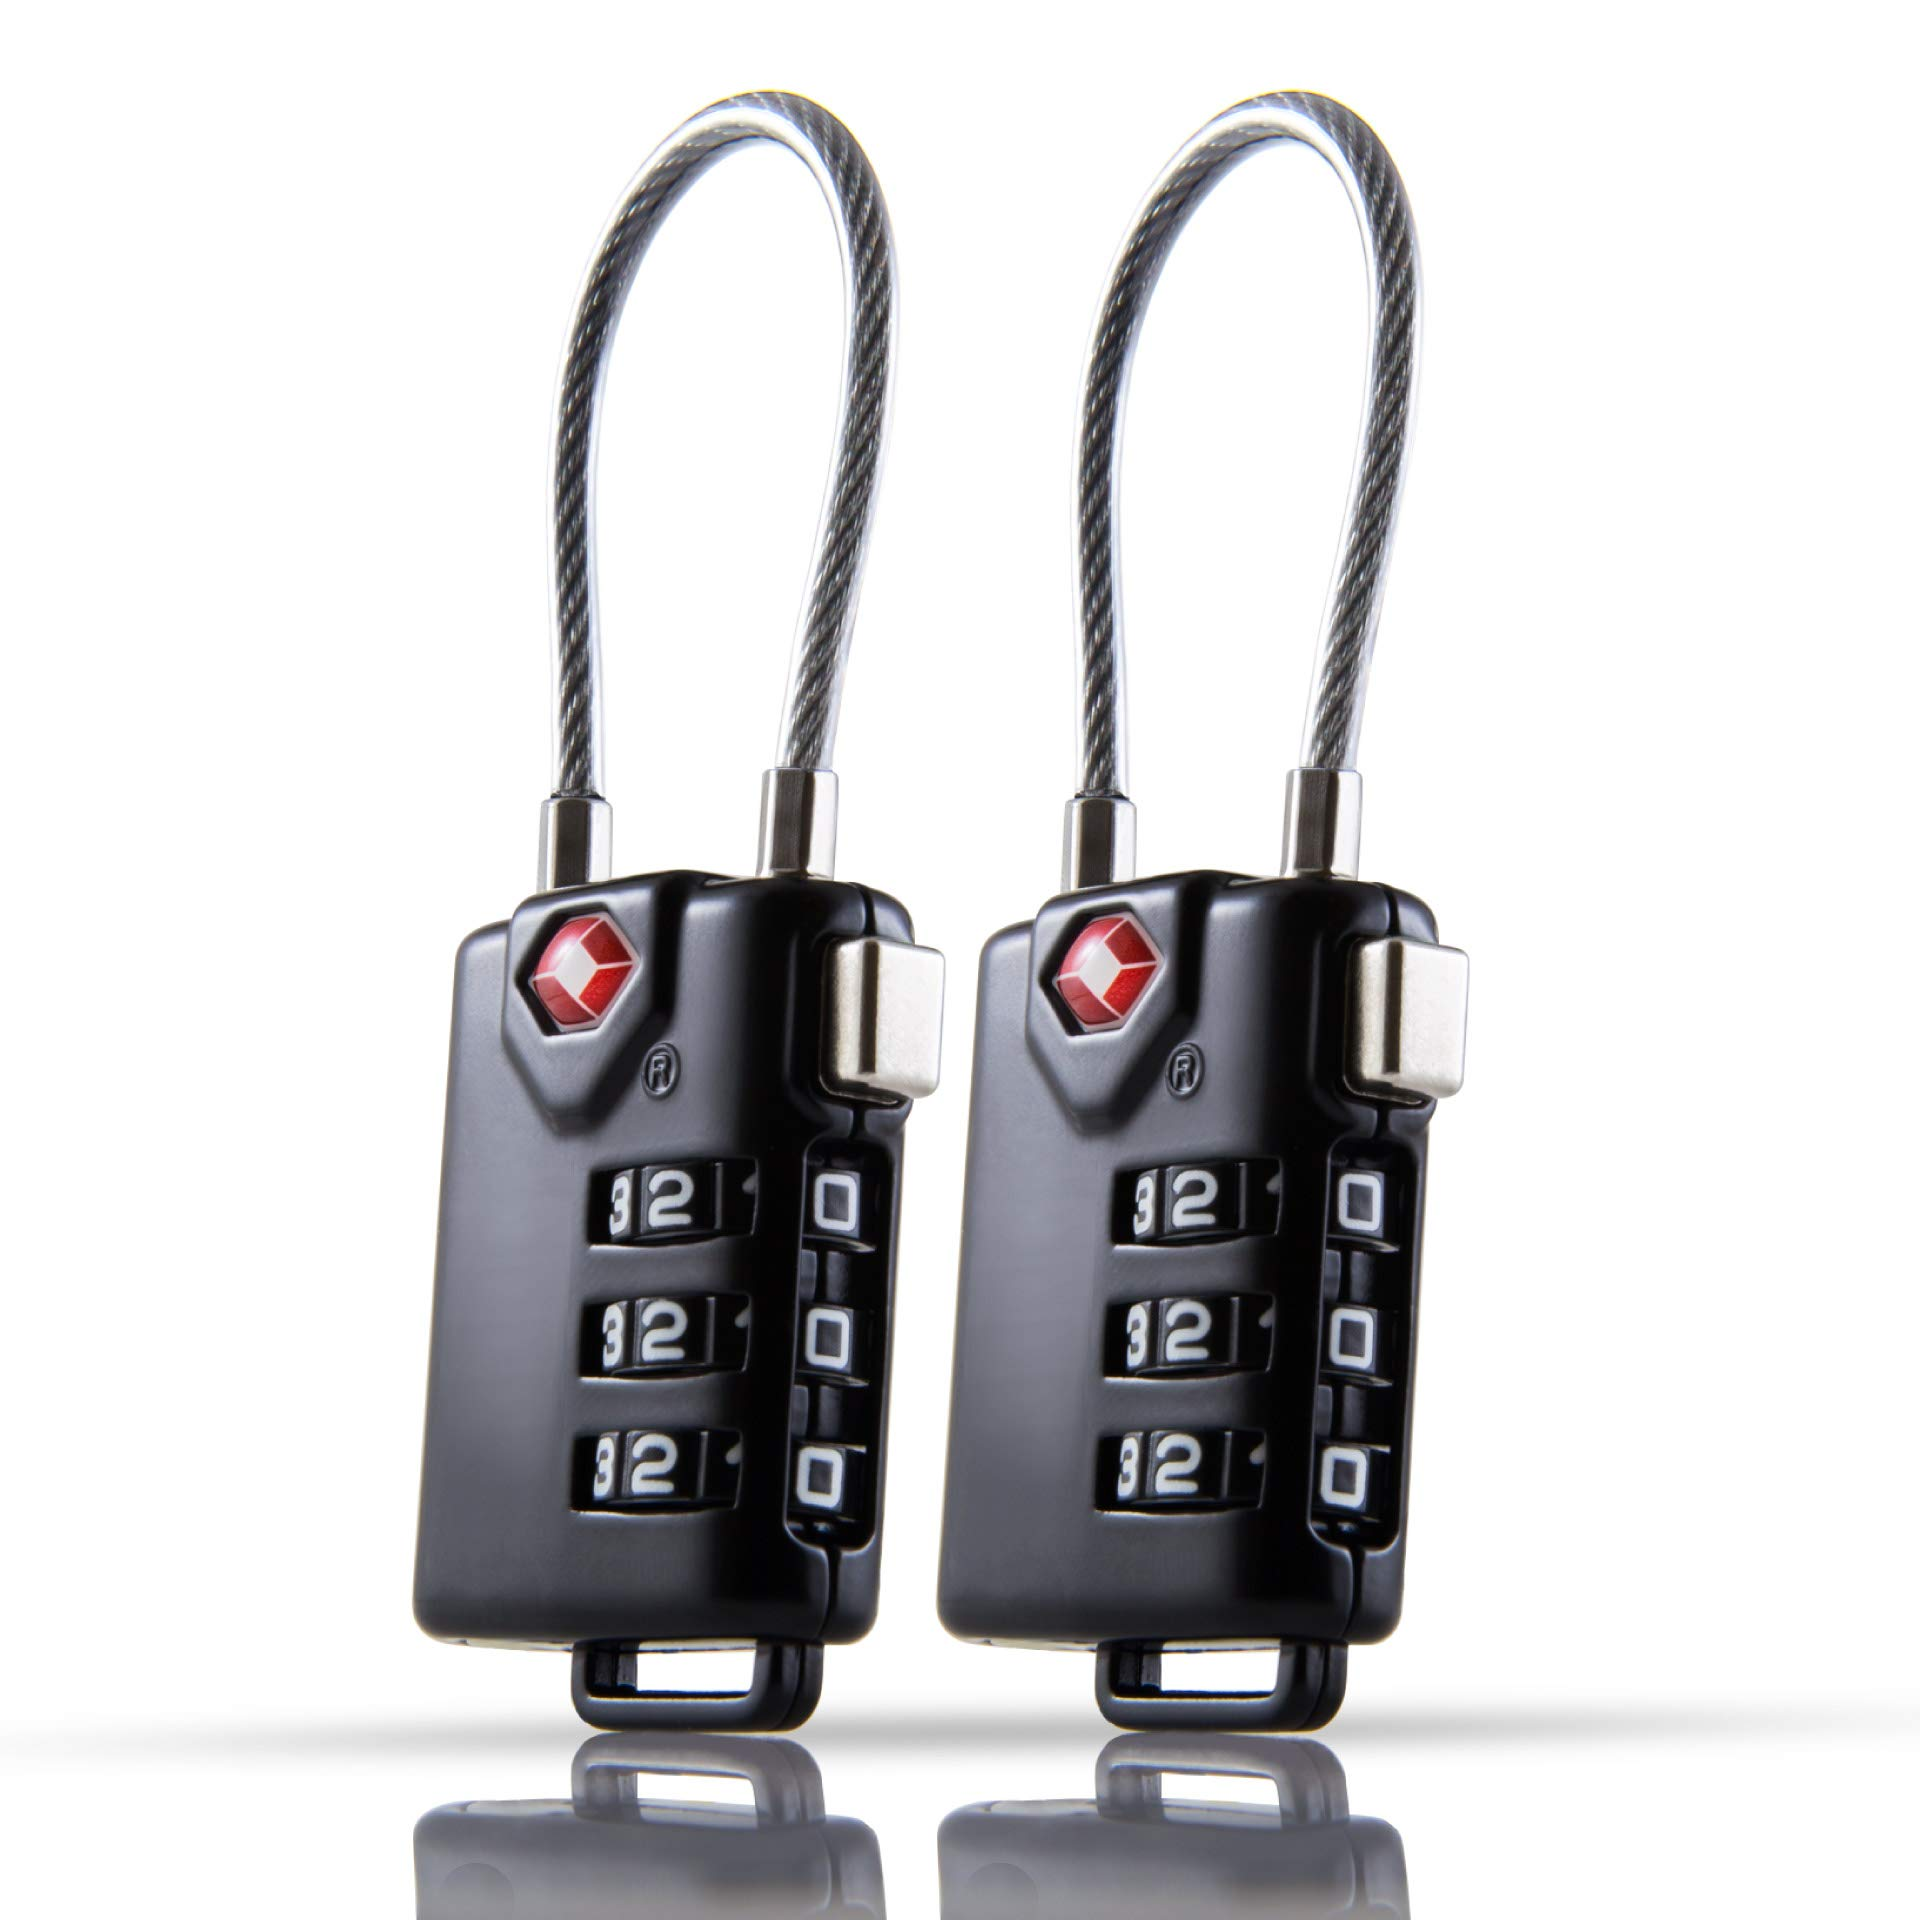 TSA Approved Travel Luggage Locks - Small Combination Cable Lock for Suitcase, Baggage or Backpack Zipper (2-Pack)